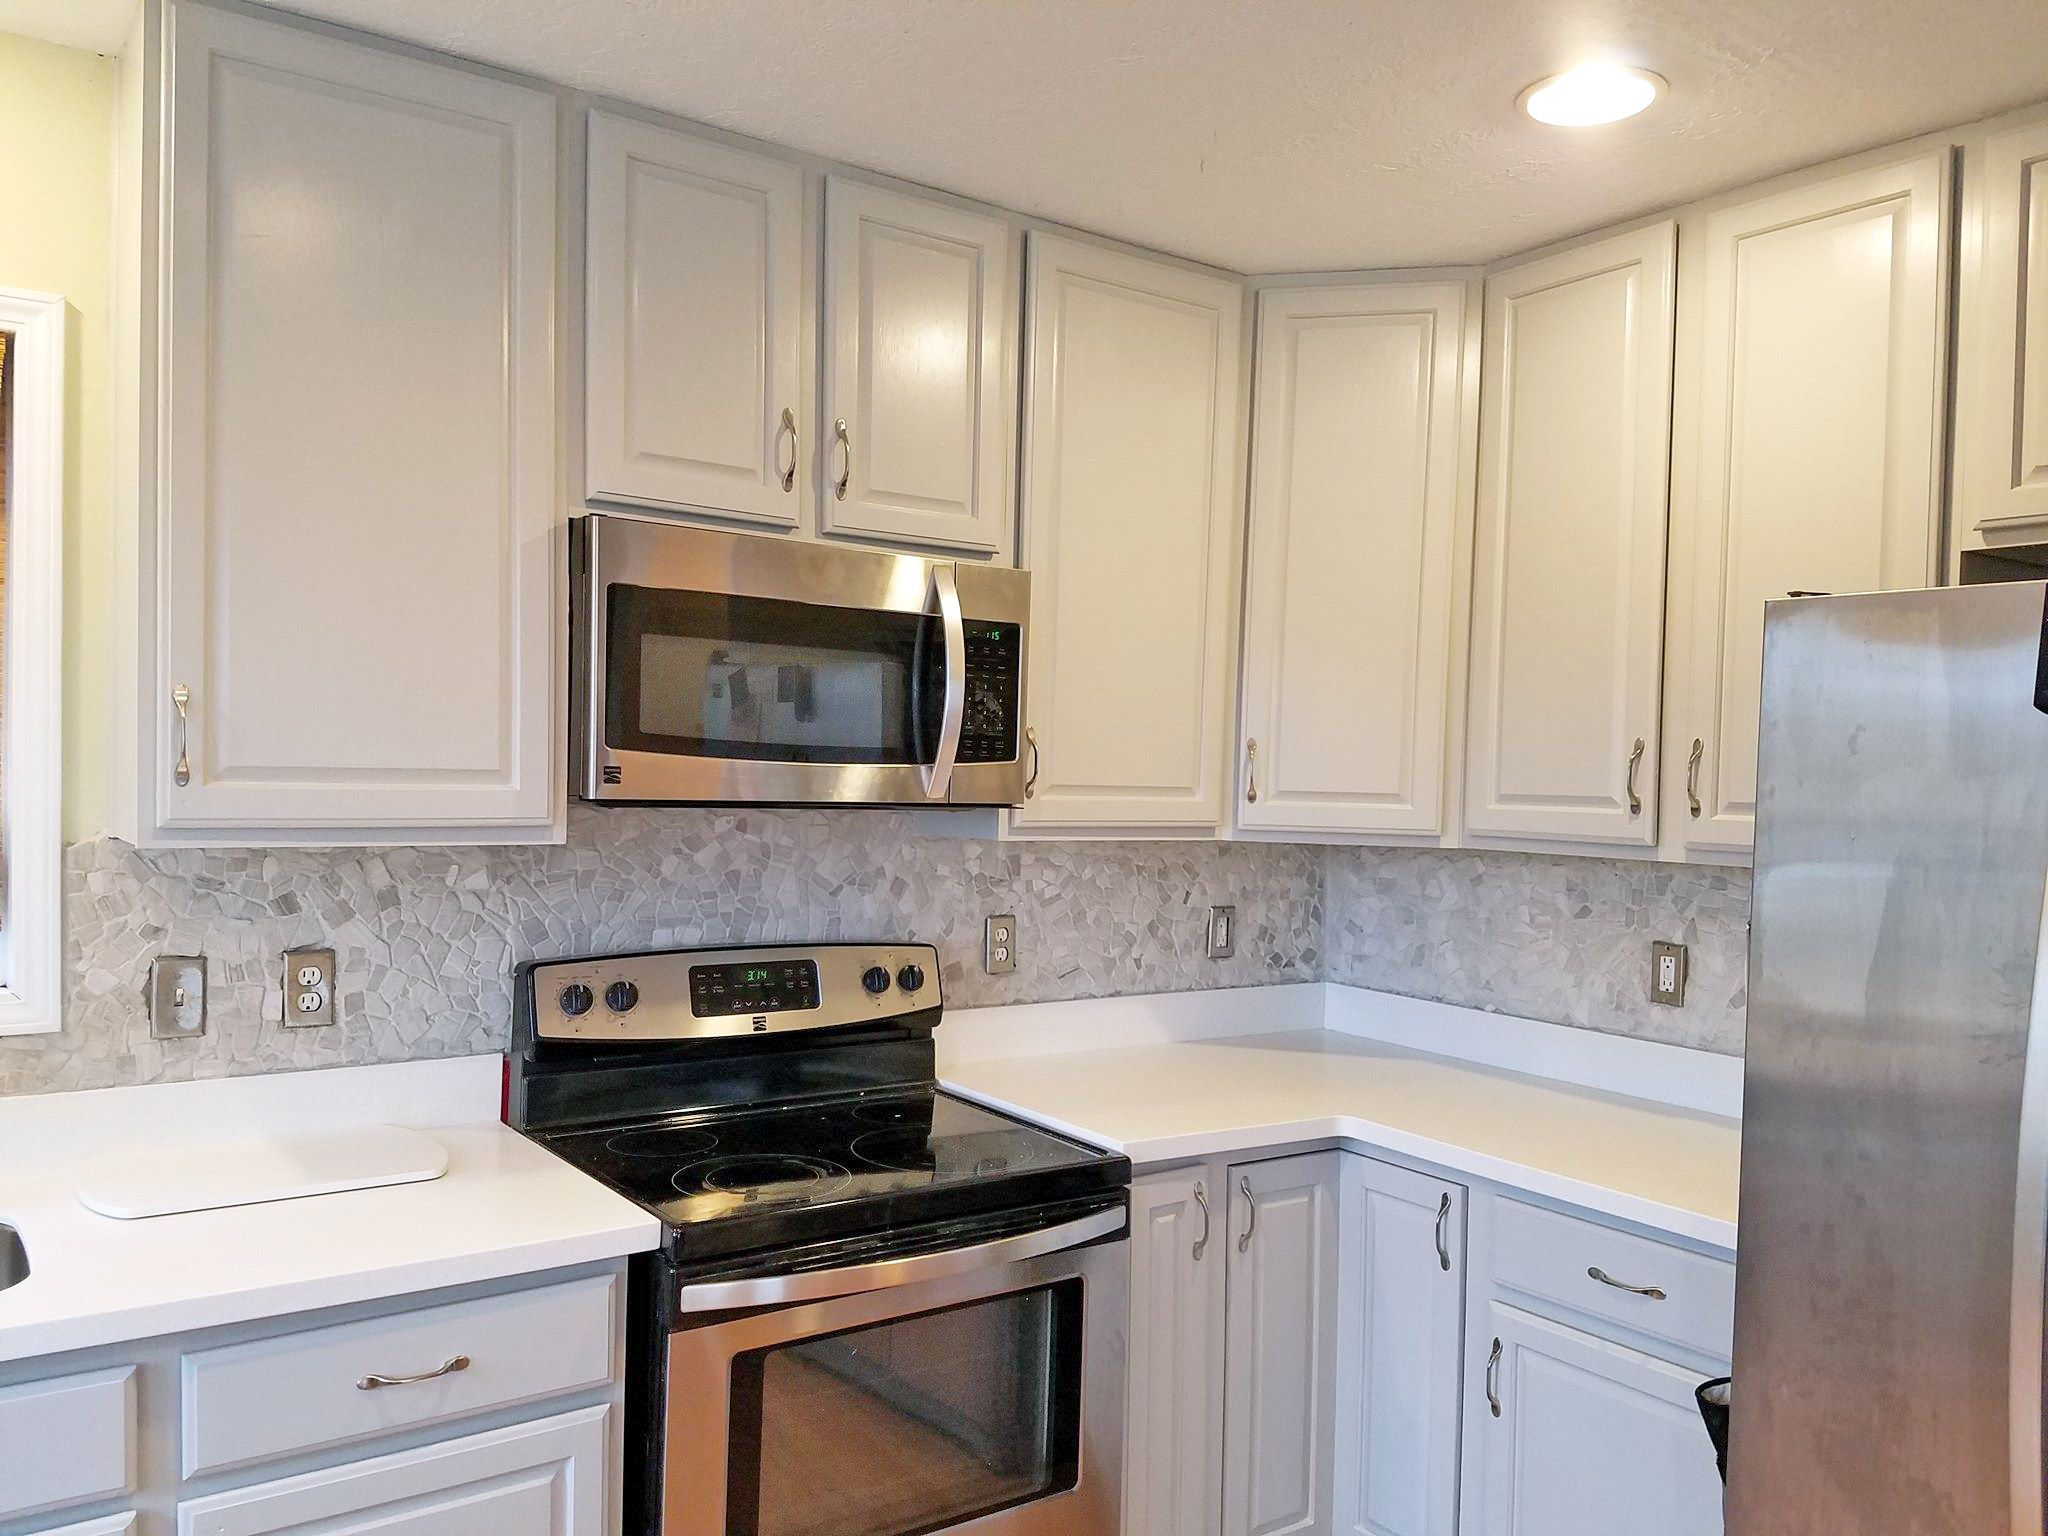 Seagull Gray Kitchen Cabinet Makeover Finish Kitchen Cabinets Kitchen Cabinets Makeover Milk Paint Kitchen Cabinets